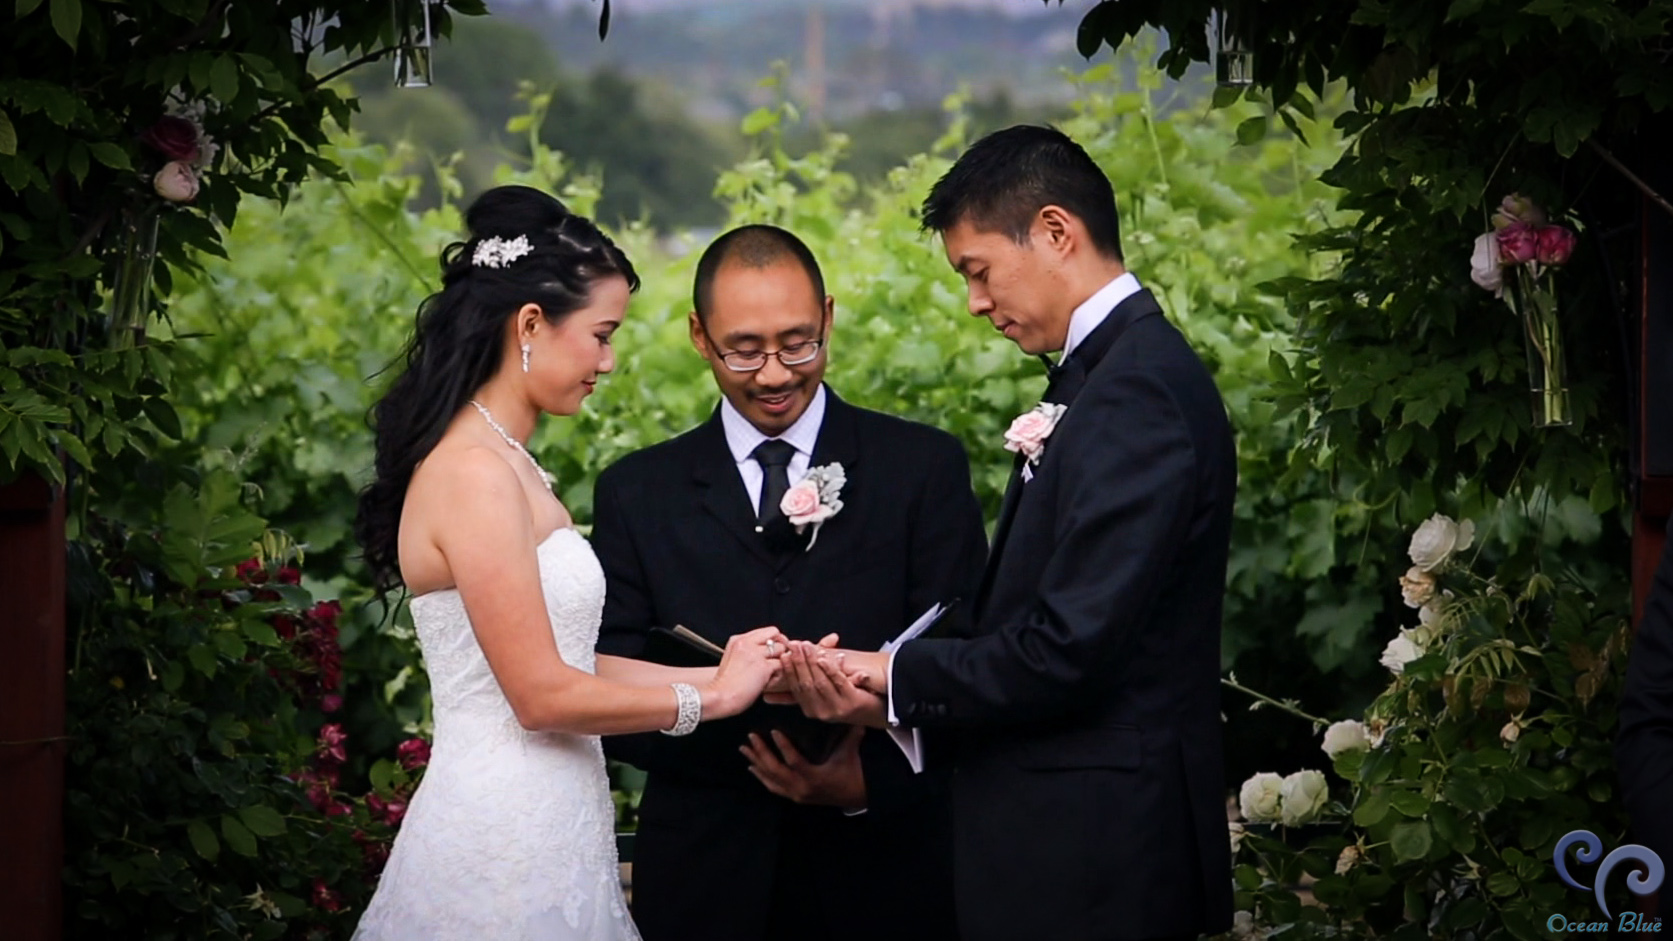 pleasanton_wedding_ceremony.jpg